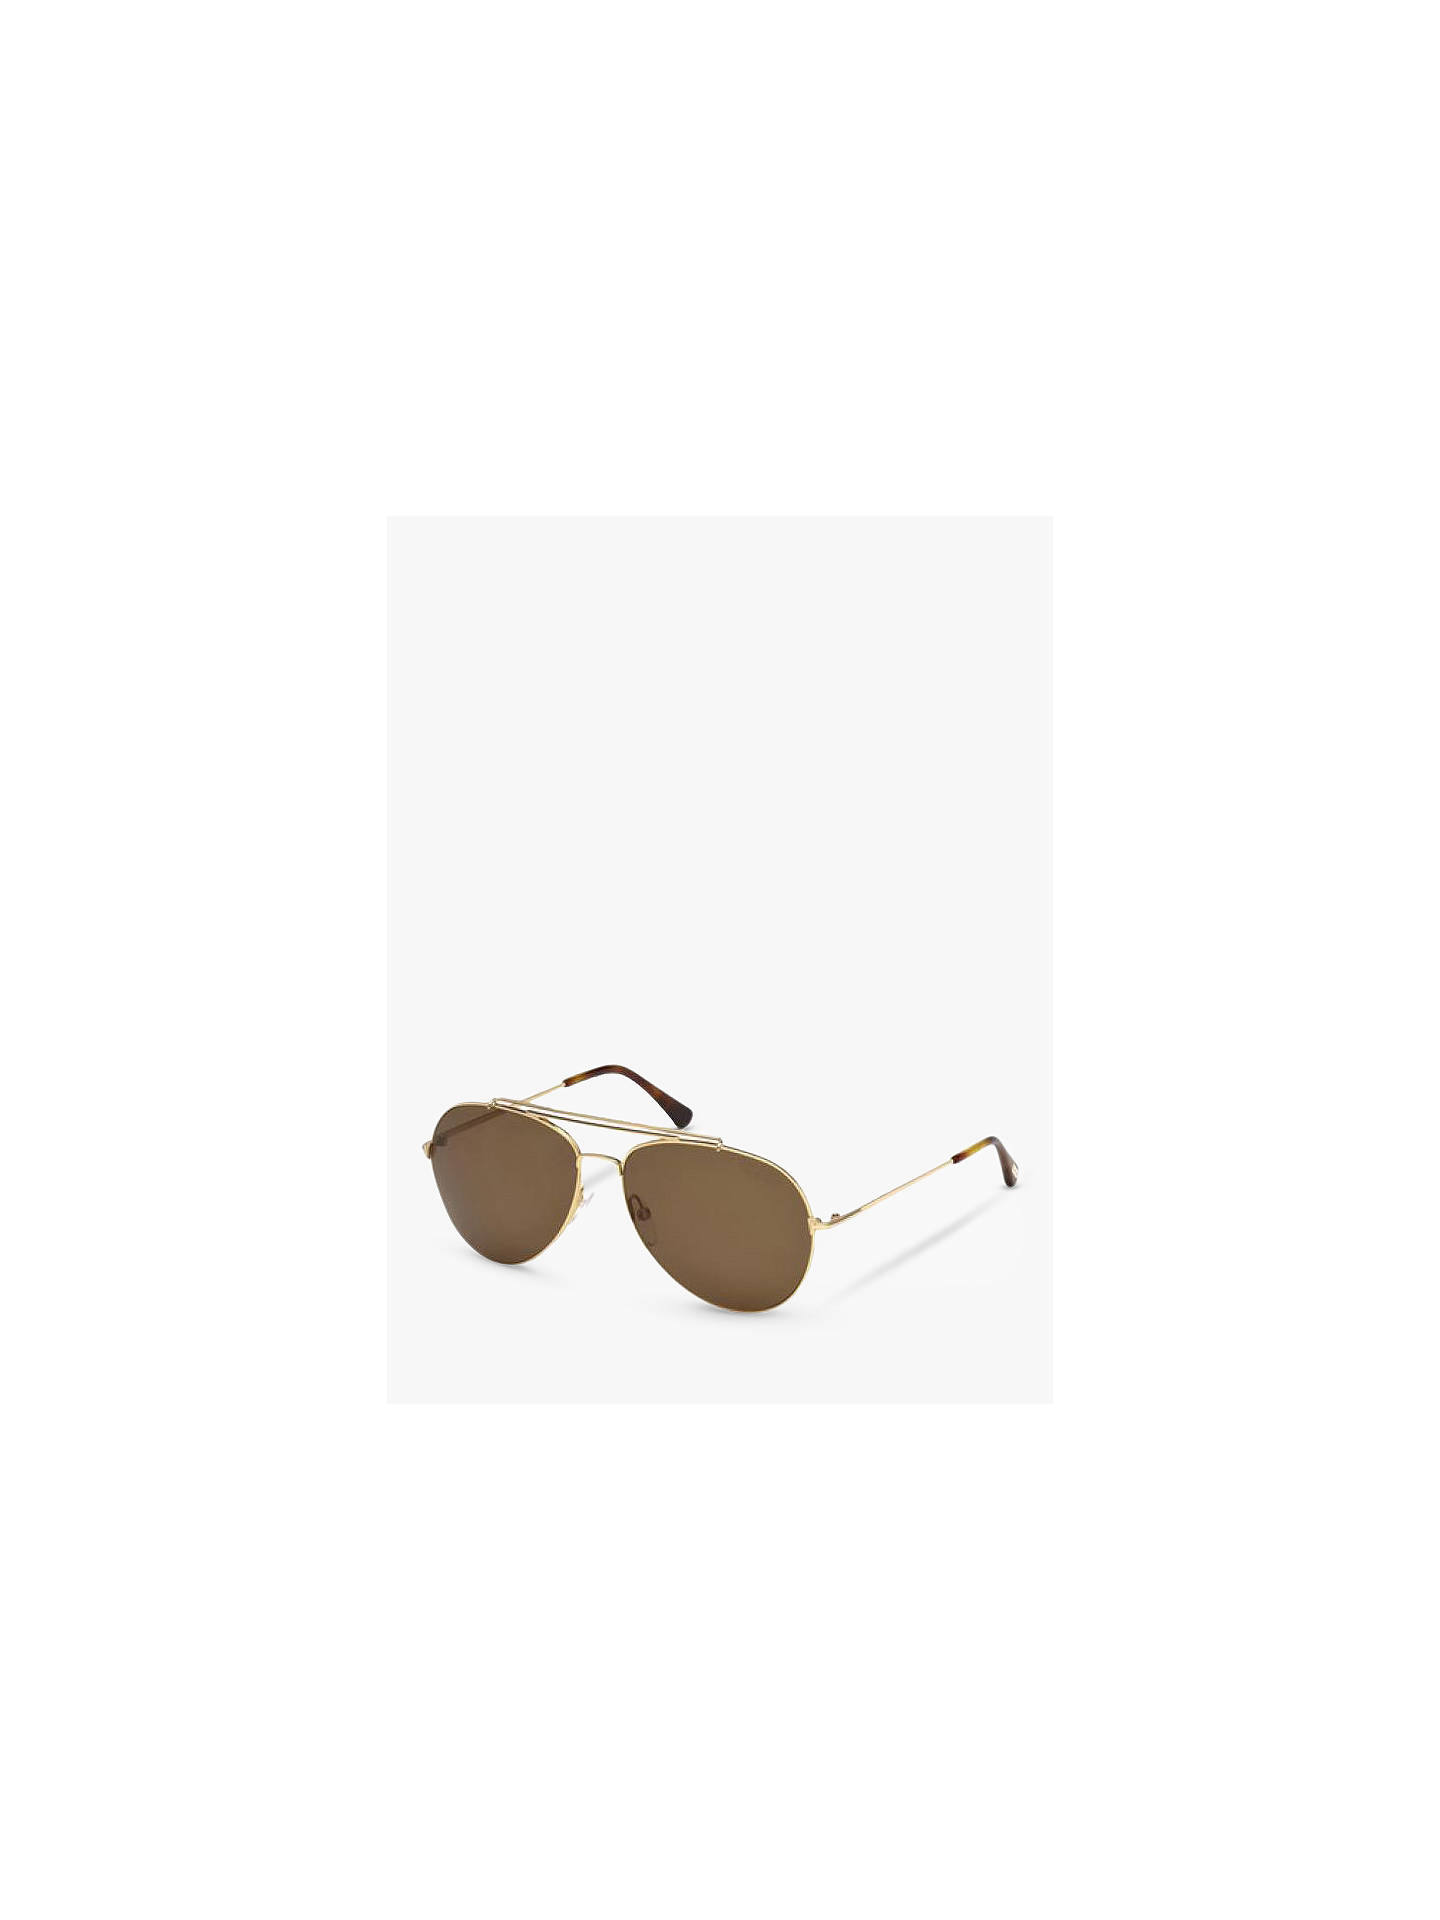 BuyTOM FORD FT0497 Polarised Aviator Sunglasses, Gold/Brown Online at johnlewis.com